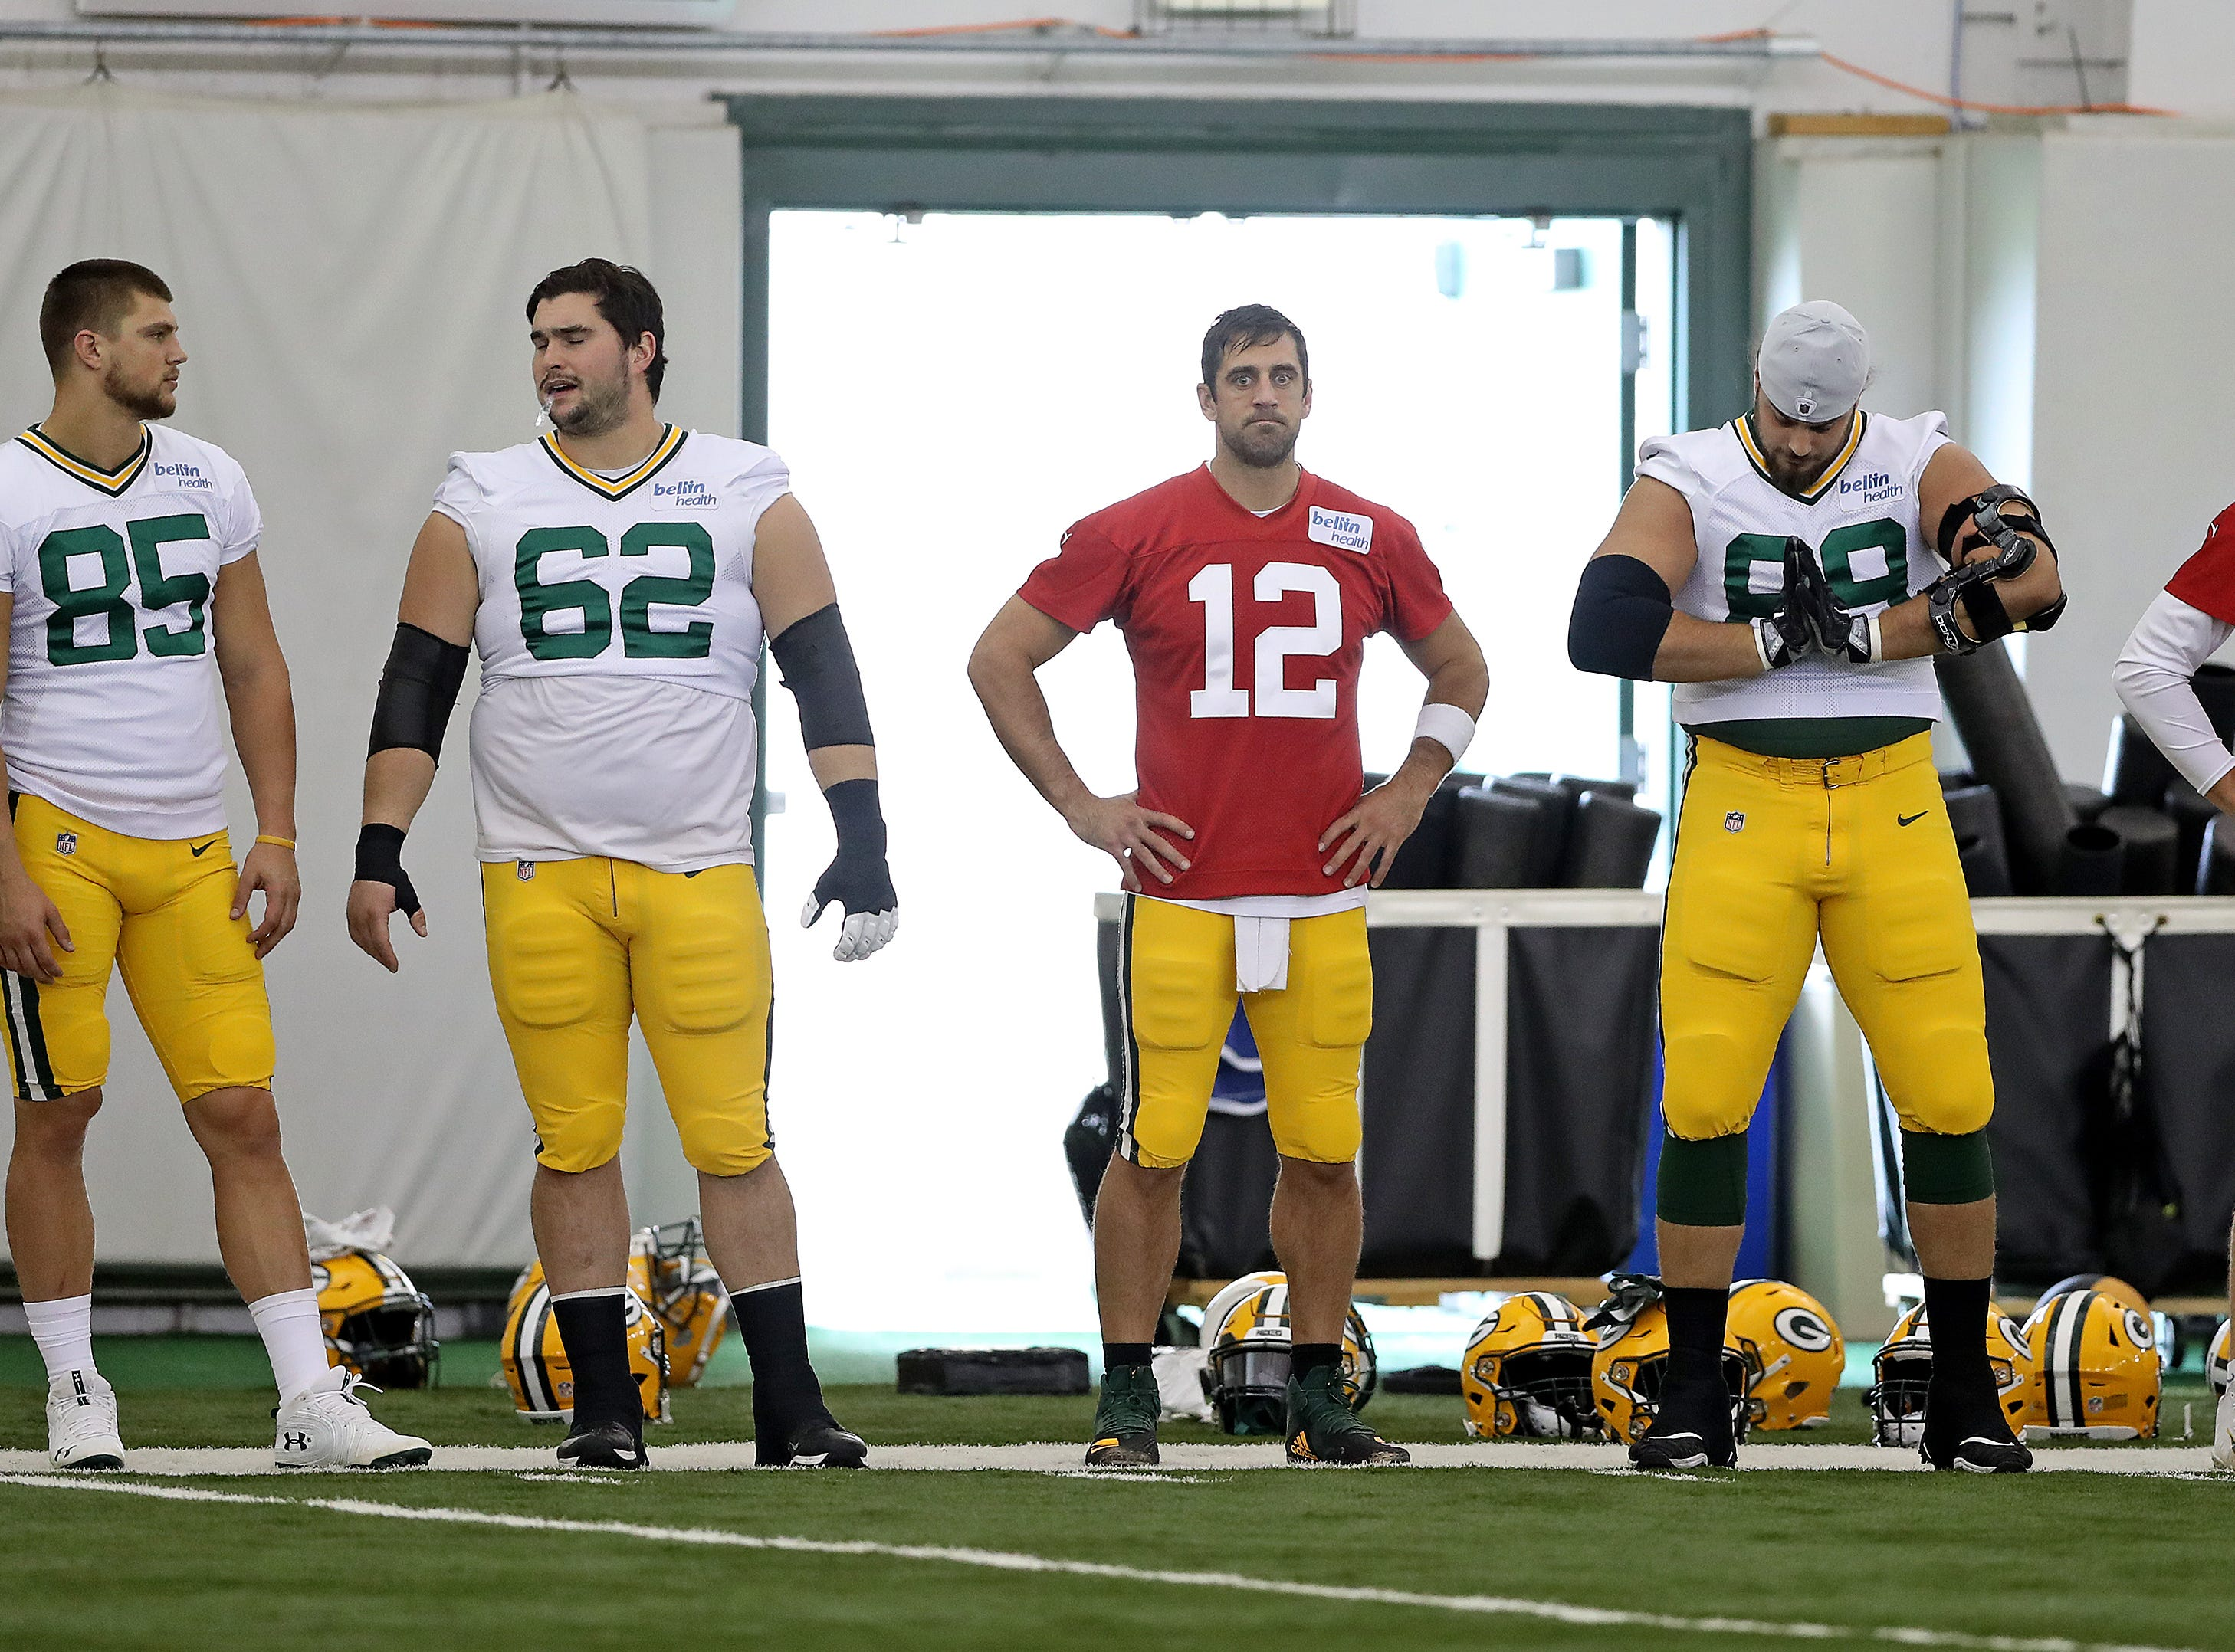 Green Bay Packers wide receiver Robert Tonyan (85), offensive guard Lucas Patrick (62), quarterback Aaron Rodgers (12), offensive tackle David Bakhtiari (69) an quarterback Tim Boyle (8) get ready for Packers practice in the Don Hutson Center Monday, September 3, 2018 in Ashwaubenon, Wis